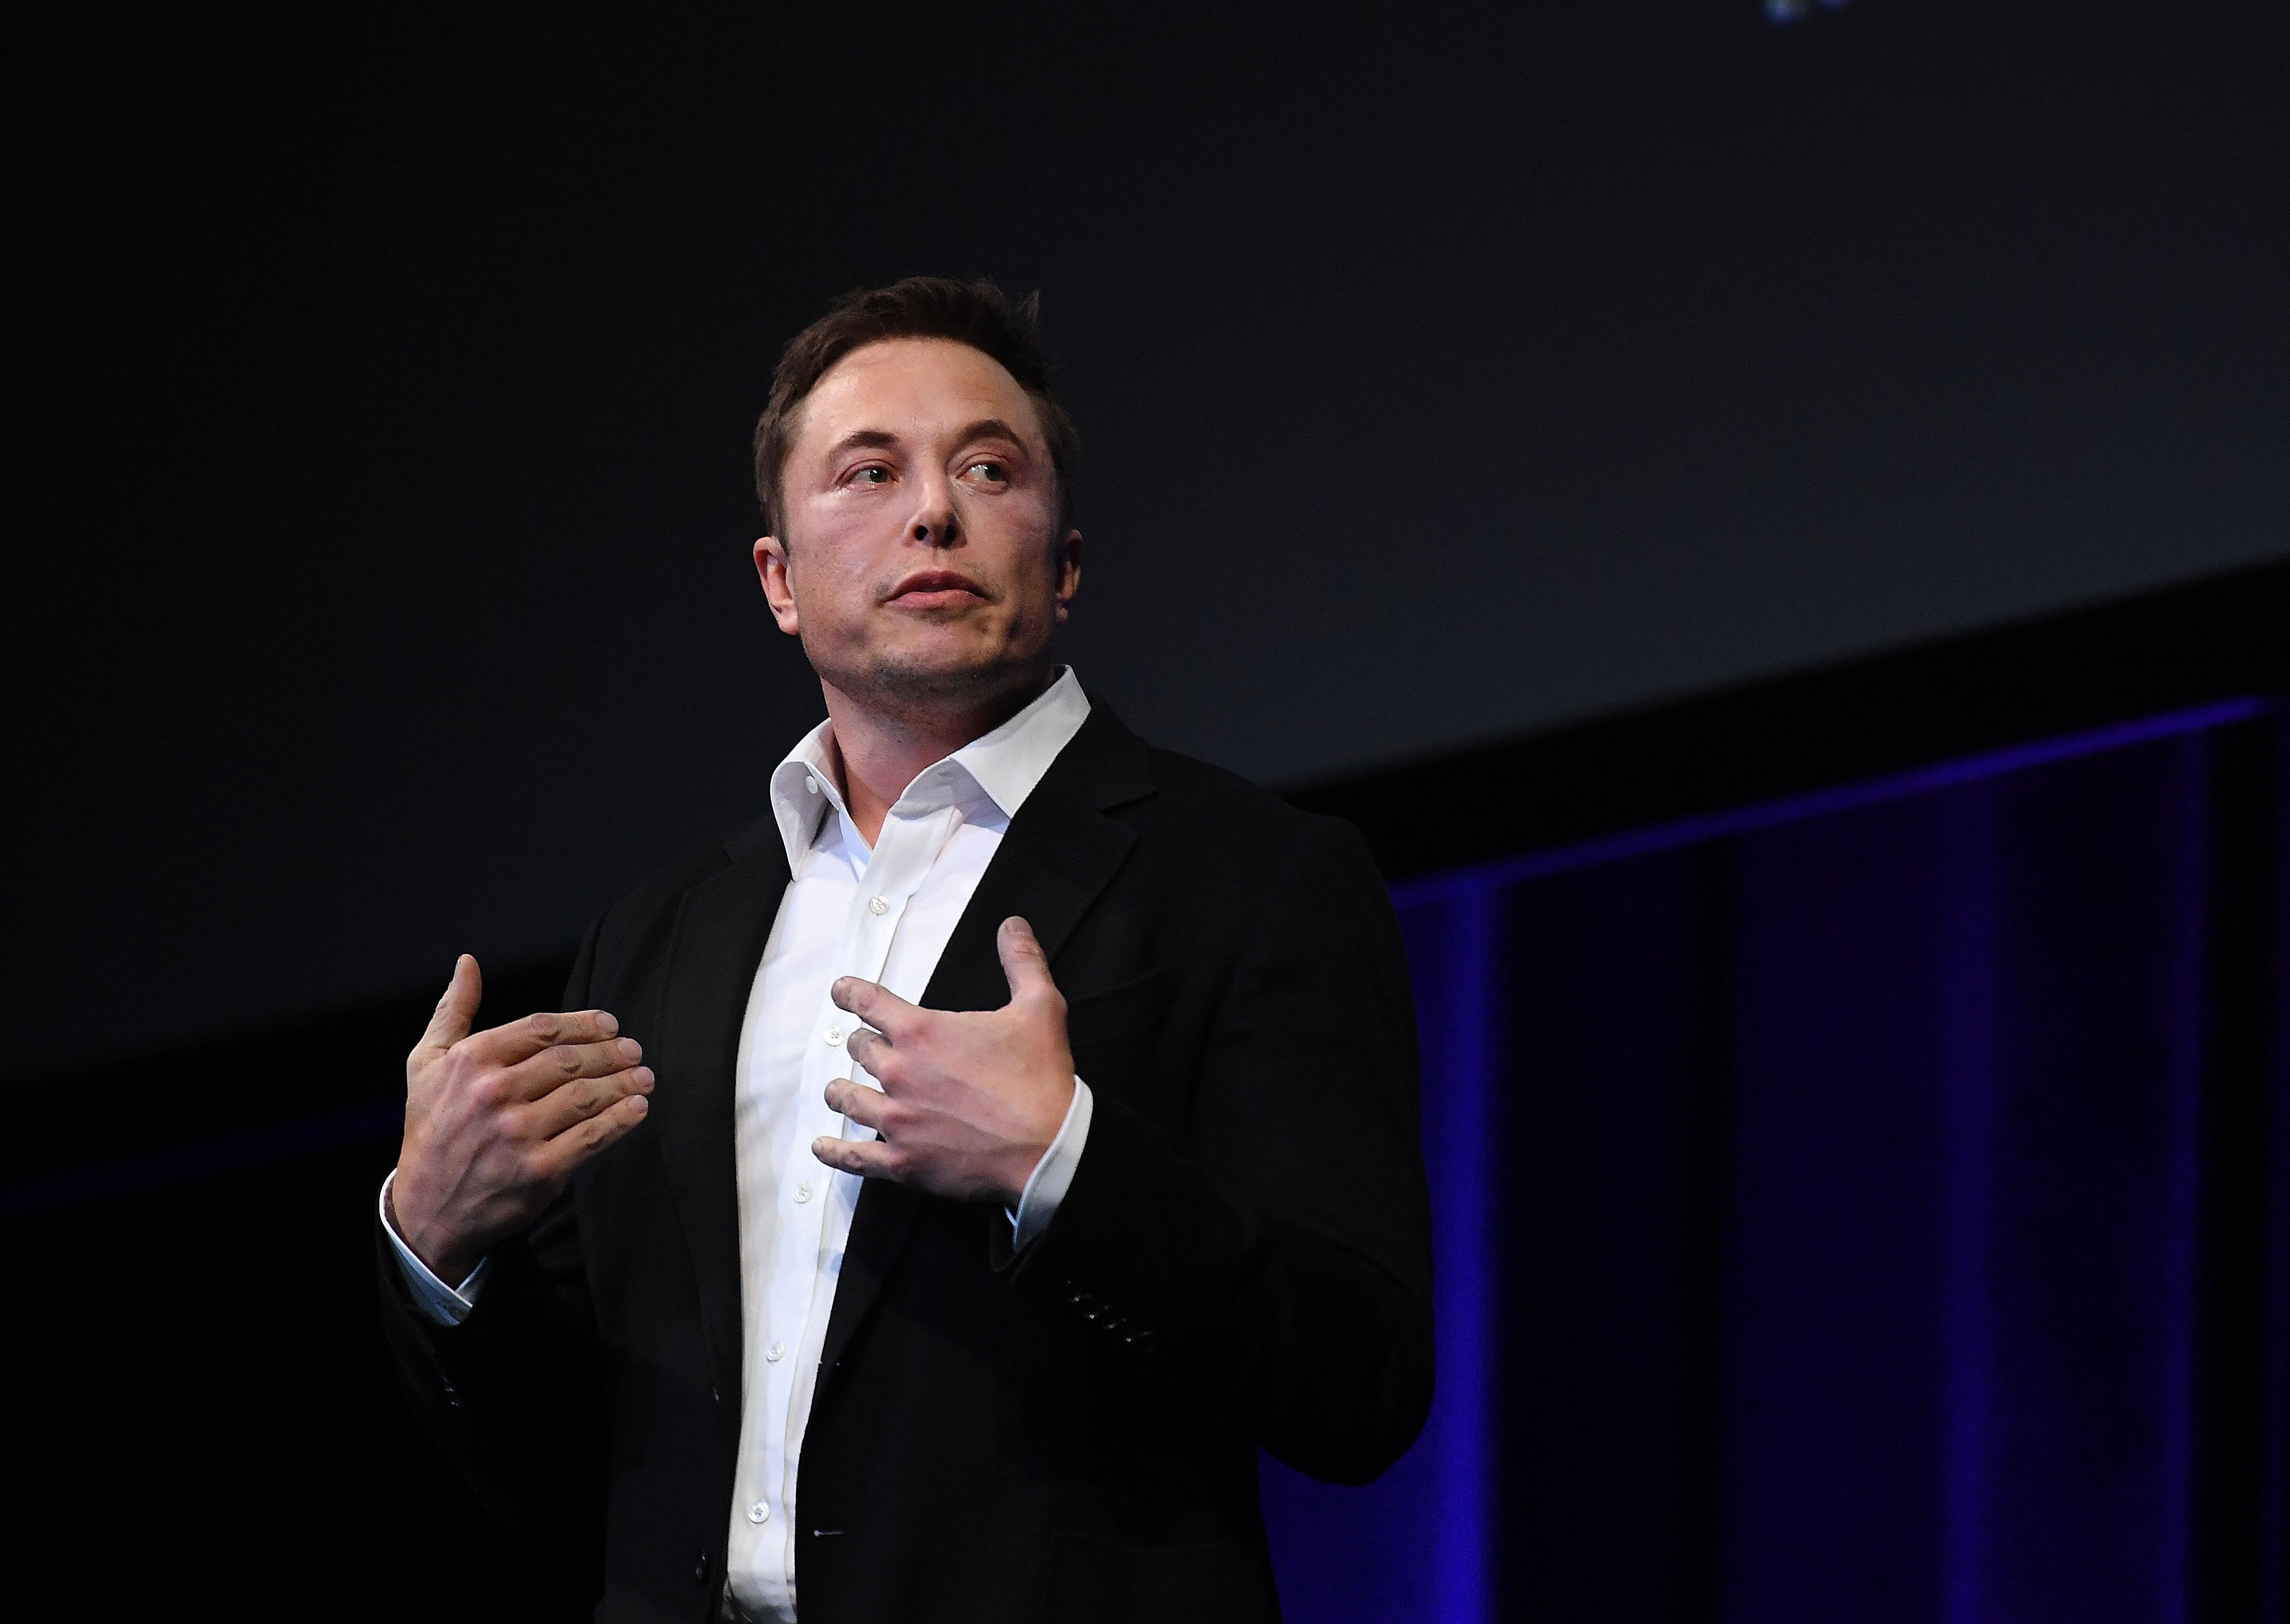 Of Course Elon Musk Is Poaching Onion Staffers. On Twitter, He's the Onion's Biggest Fan.